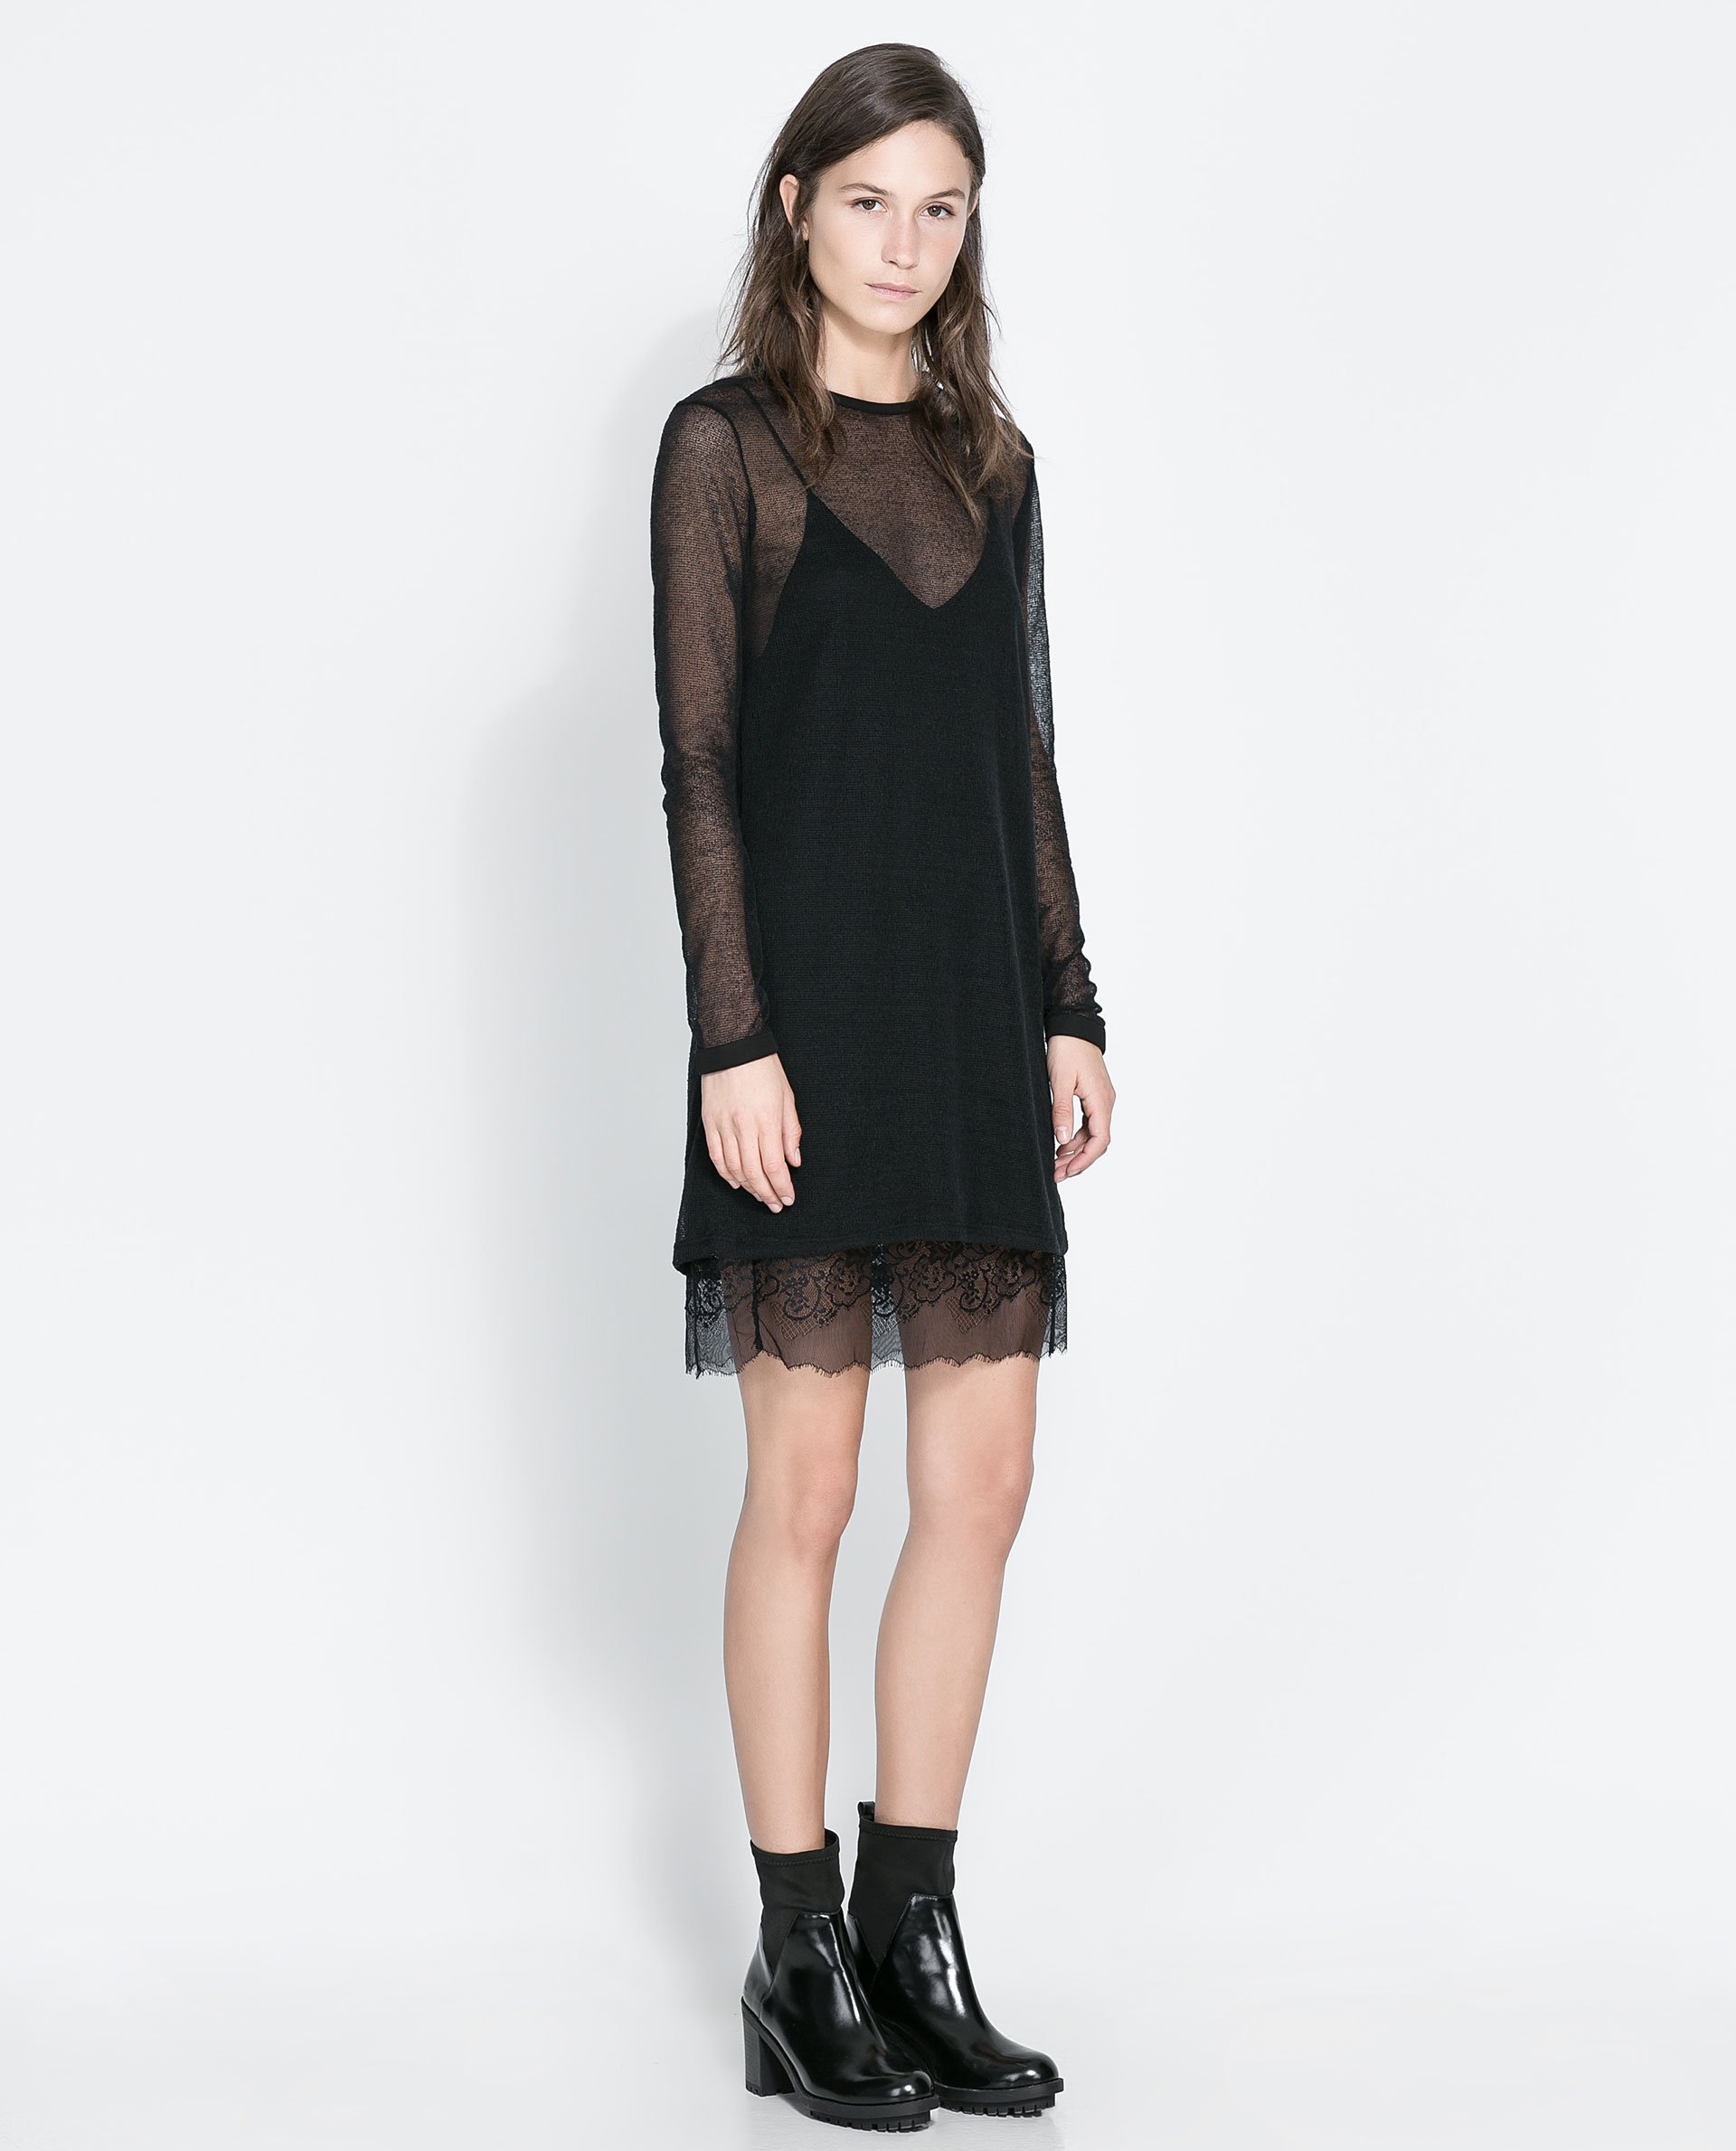 Galerry slip dress with lace bottom